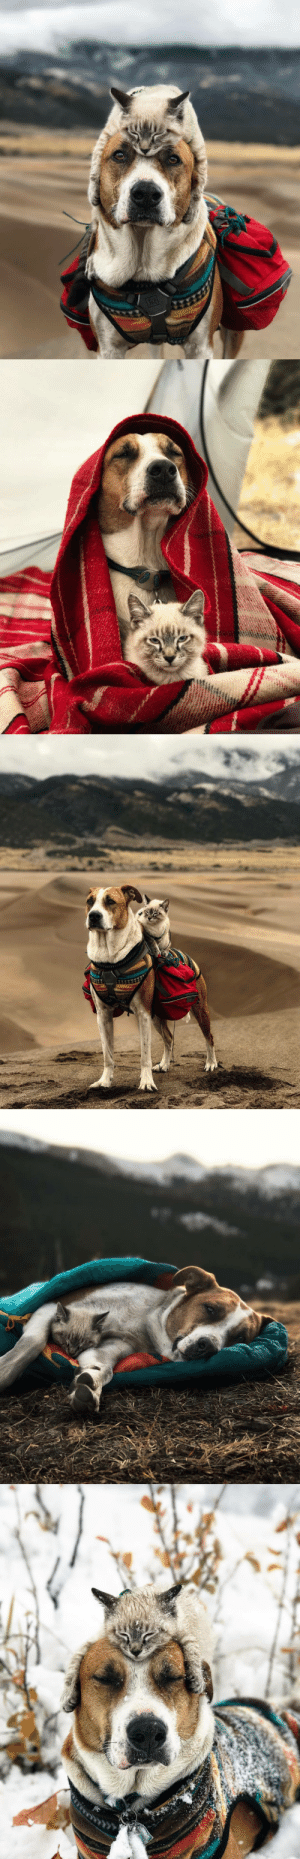 boredpanda:  This Cat And Dog Love Travelling Together, And Their Pictures Are Absolutely Epic: boredpanda:  This Cat And Dog Love Travelling Together, And Their Pictures Are Absolutely Epic